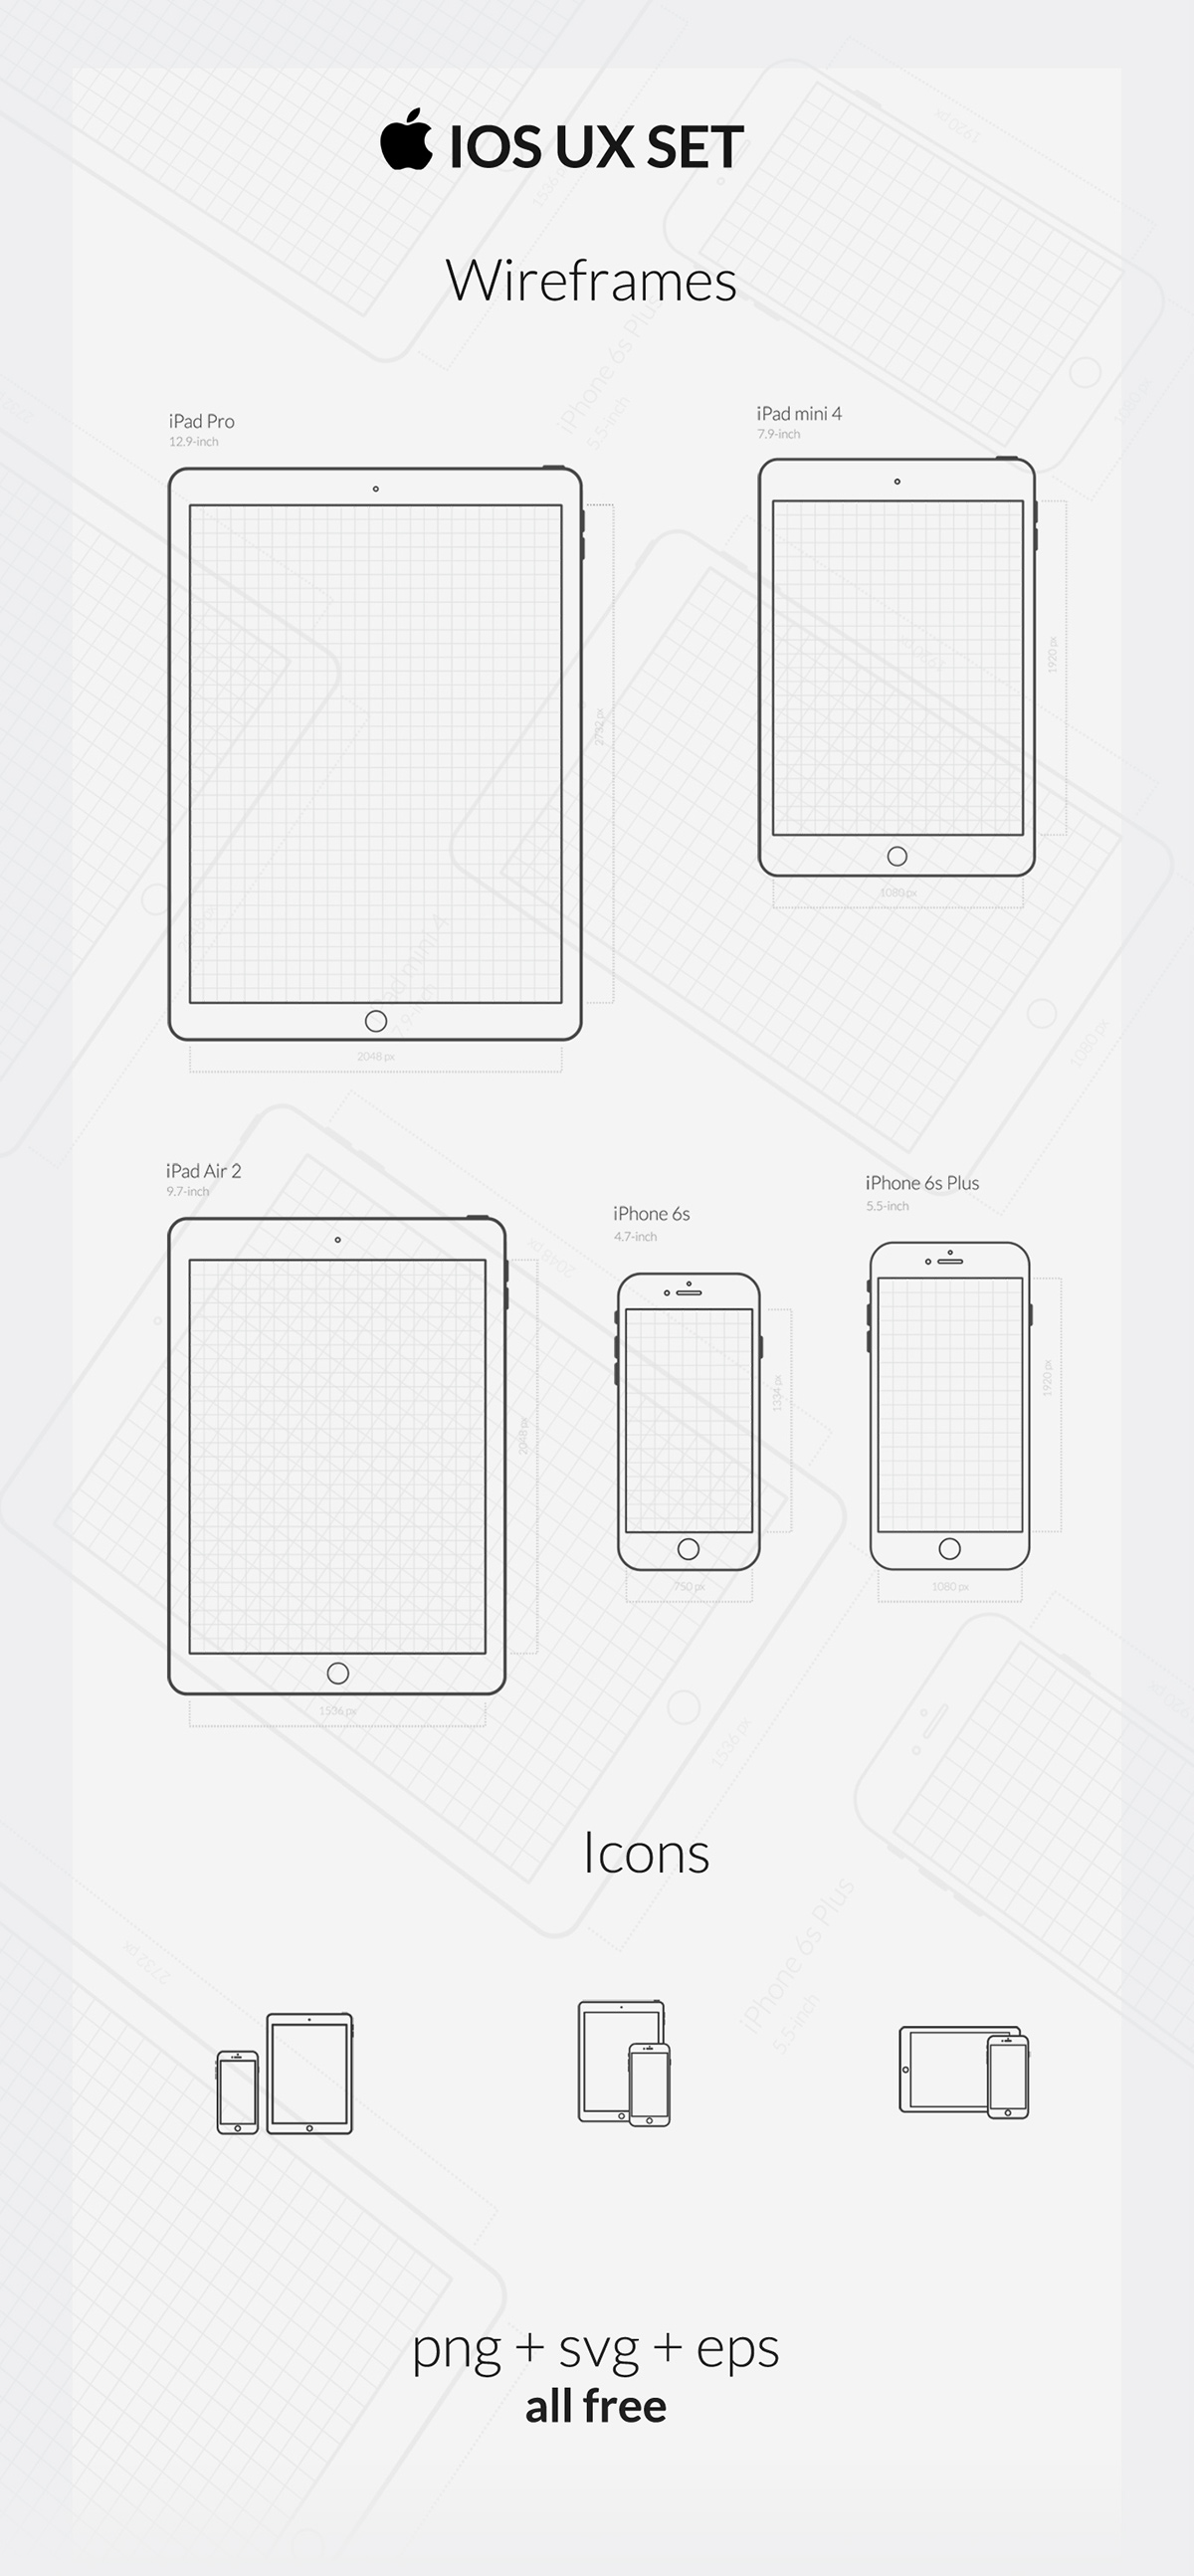 Free iOS UX SET (wireframes & icons) on Behance